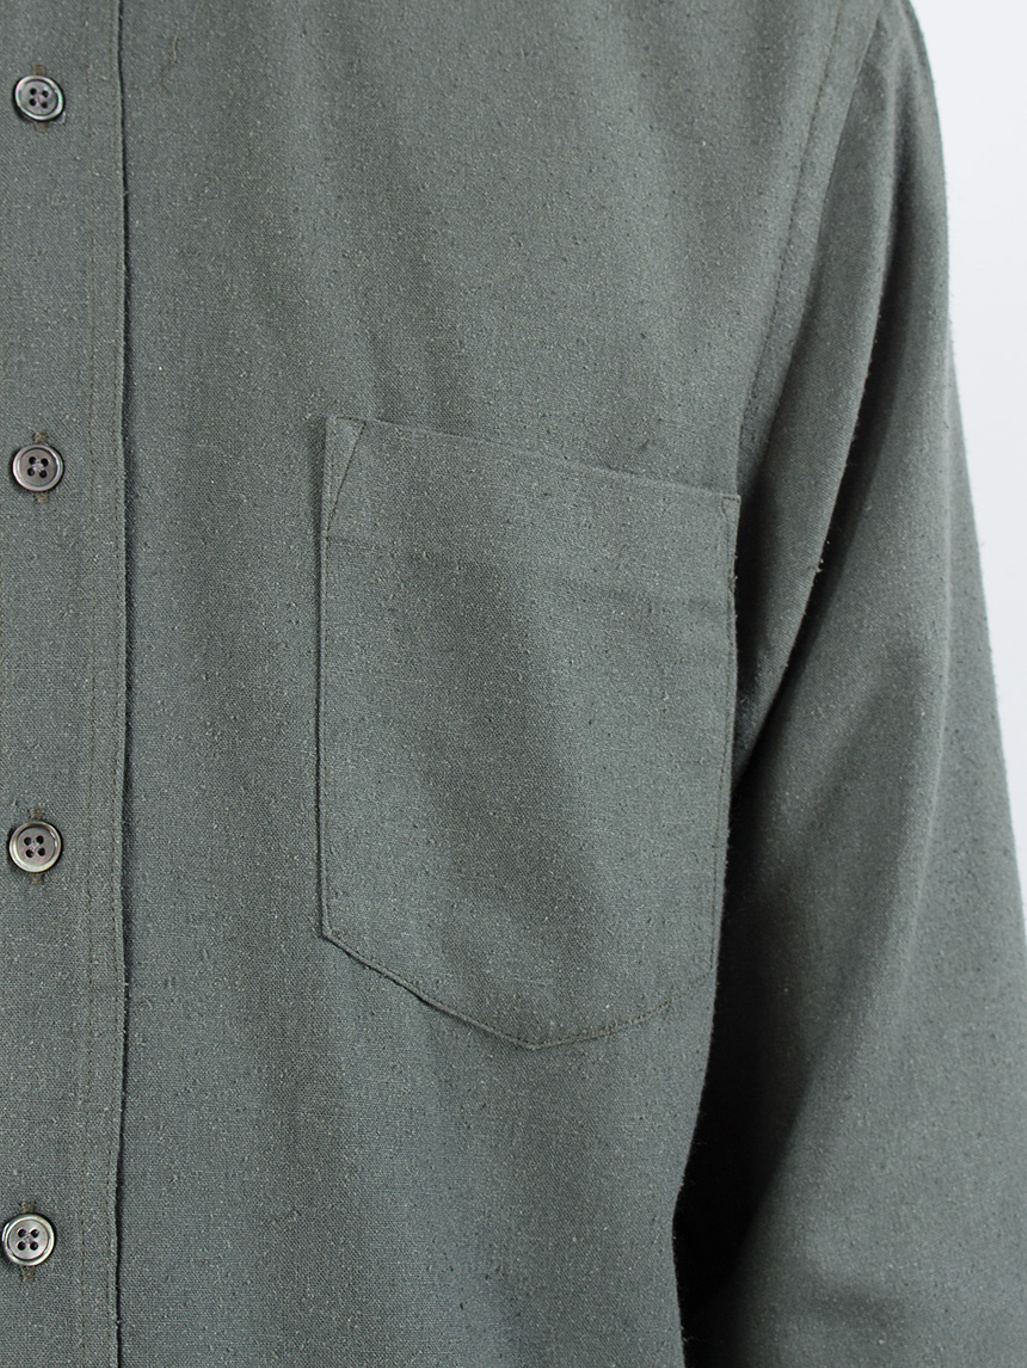 ef3d4f10a0674d Our Legacy Classic Shirt Raw Silk – EDGE Engineering and Consulting ...